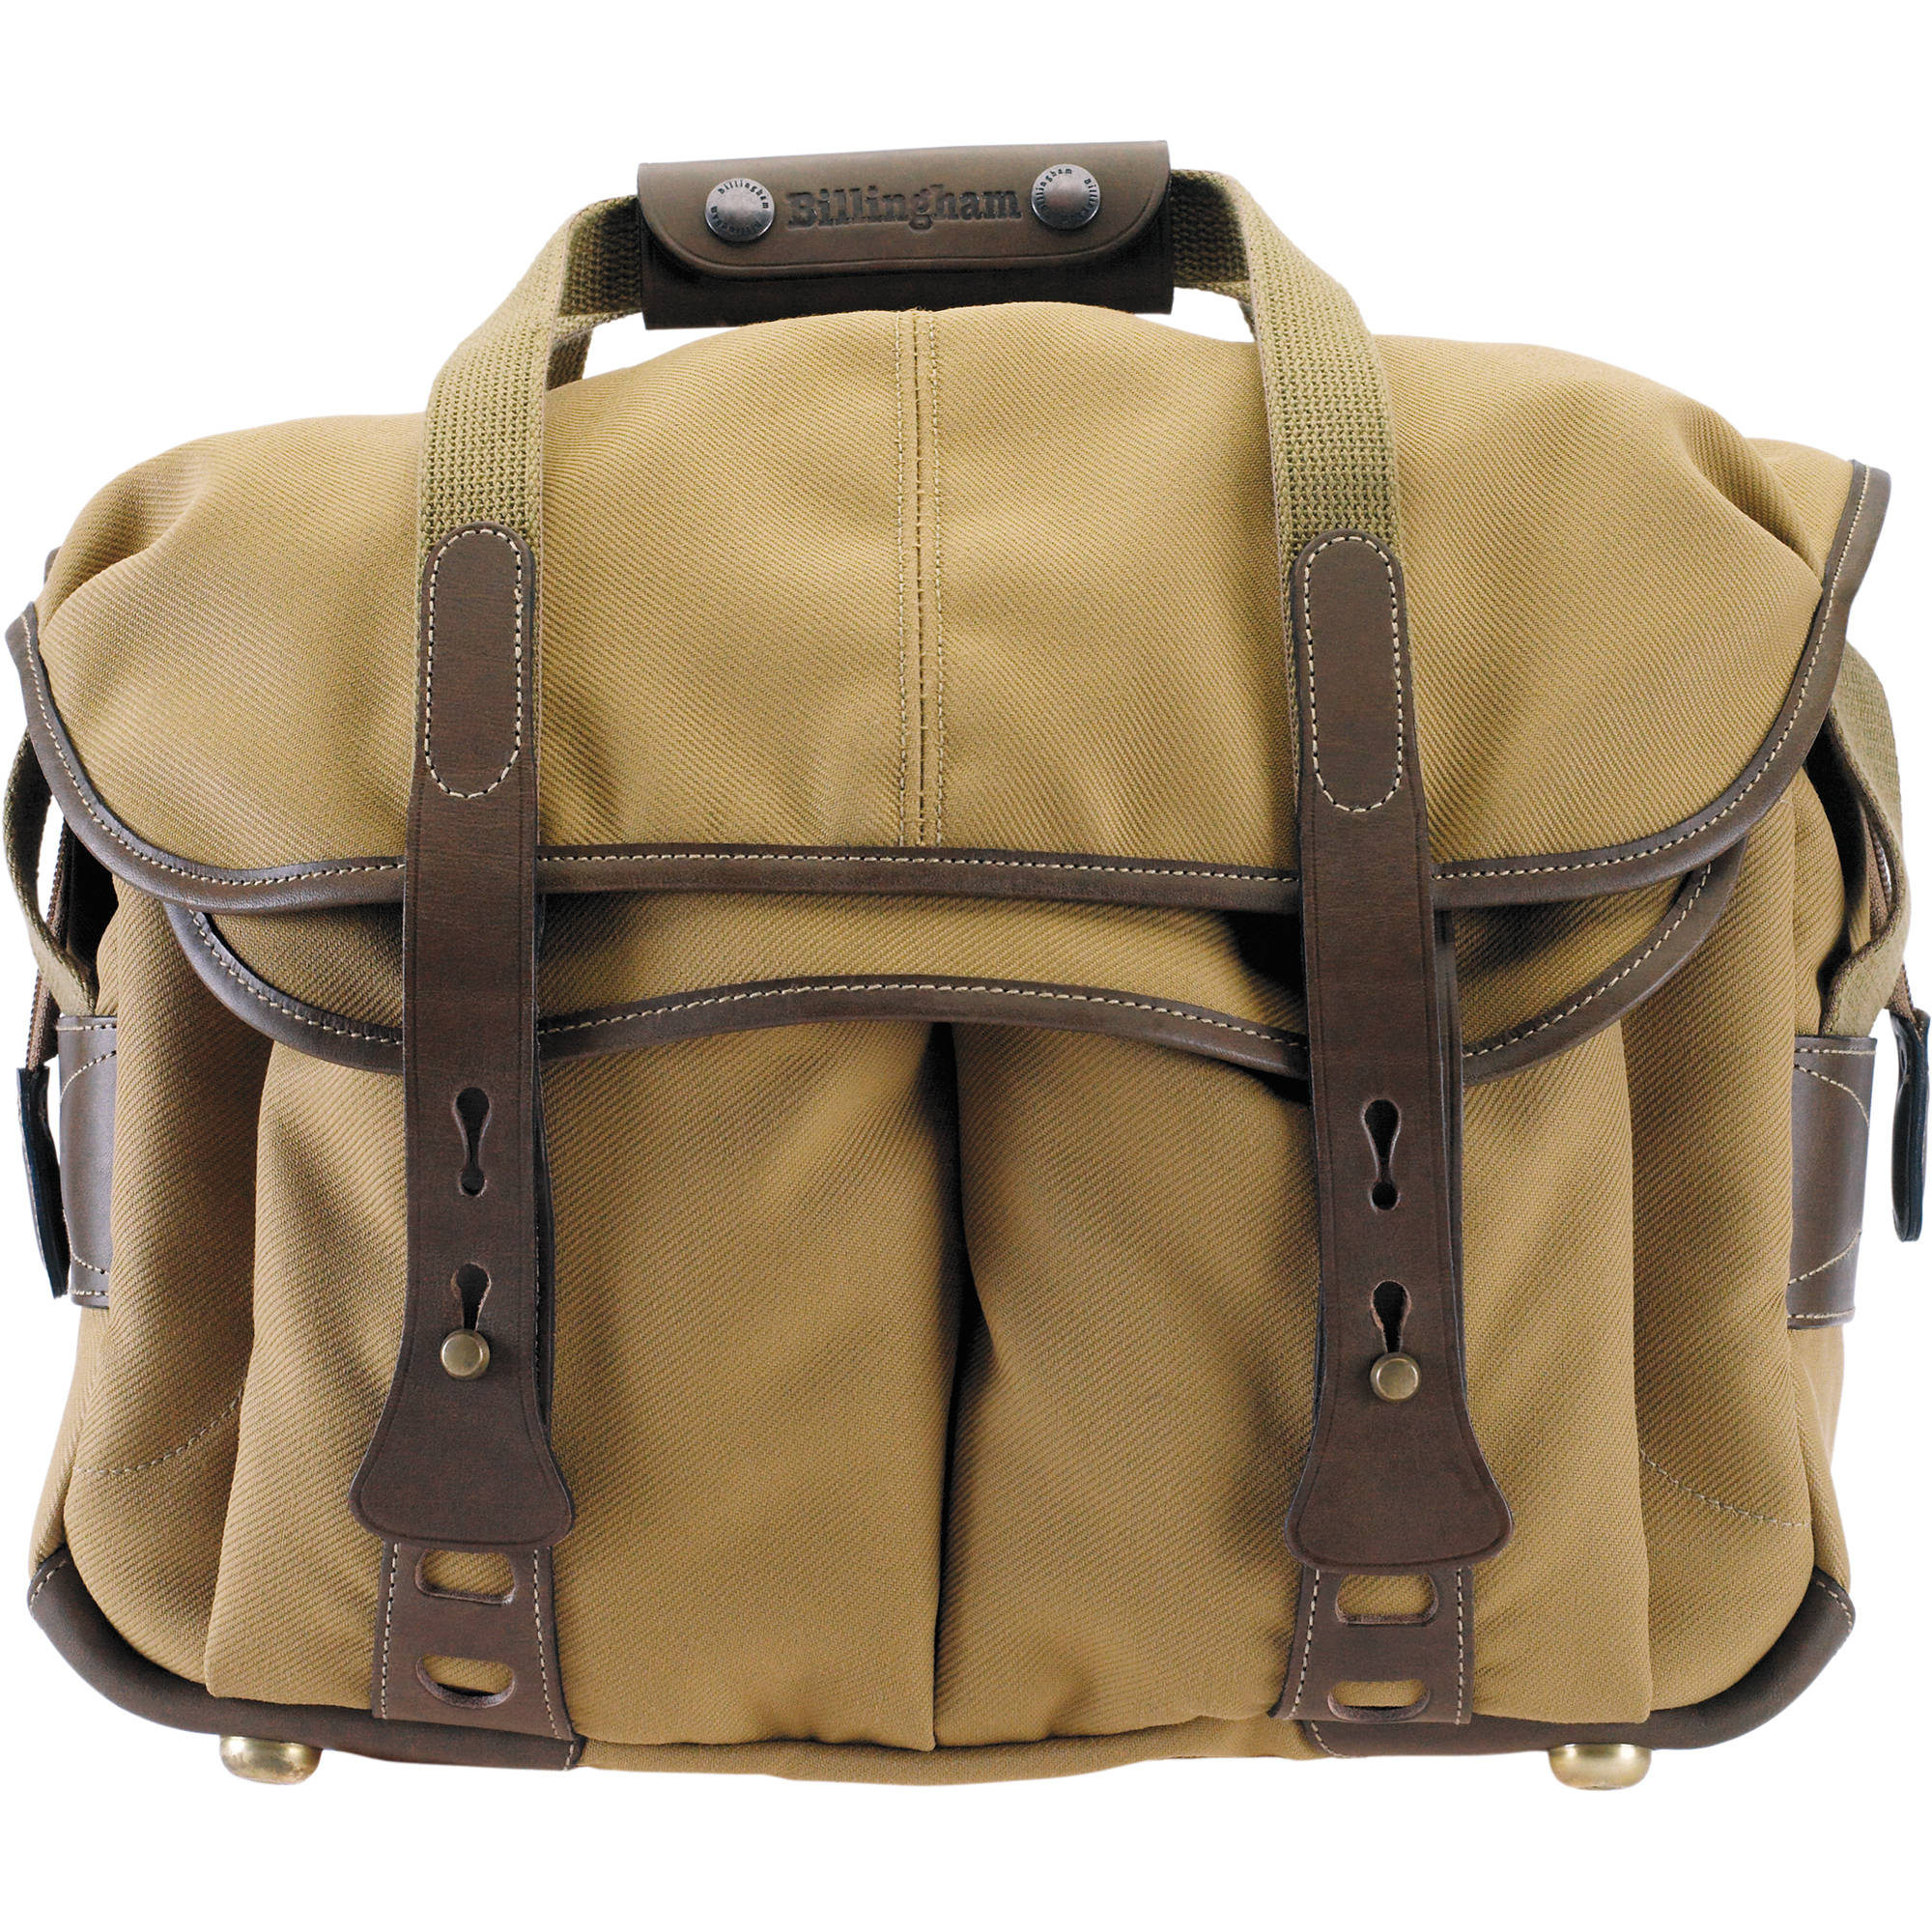 Billingham 307 Shoulder Bag Khaki With Chocolate Leather